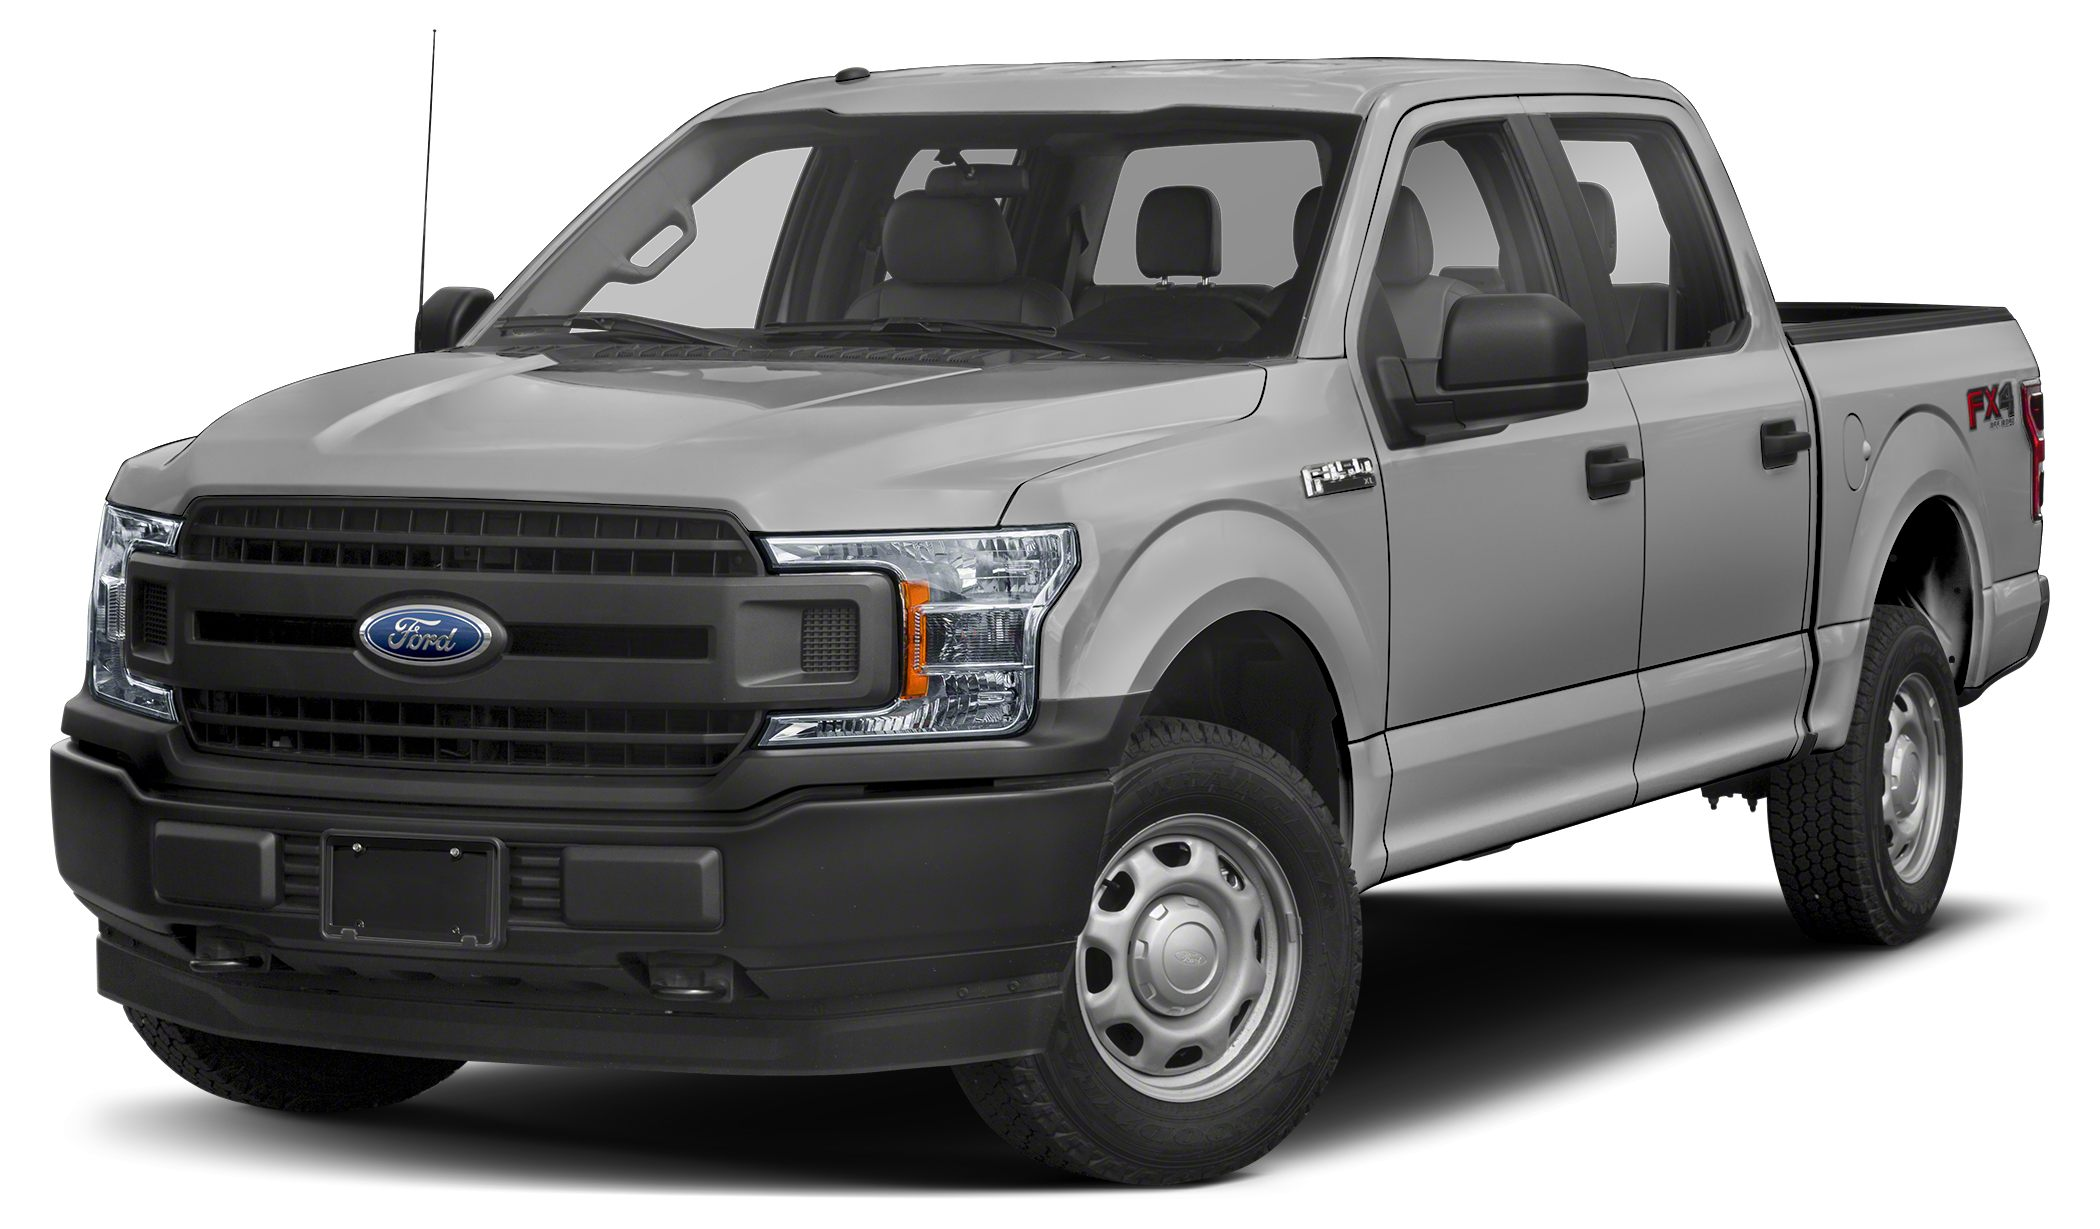 2018 Ford F-150 XL Ingot Silver 2018 Ford F-150 XL 4WD 10-Speed V6 4WD Miles 25Color Ingot Sil